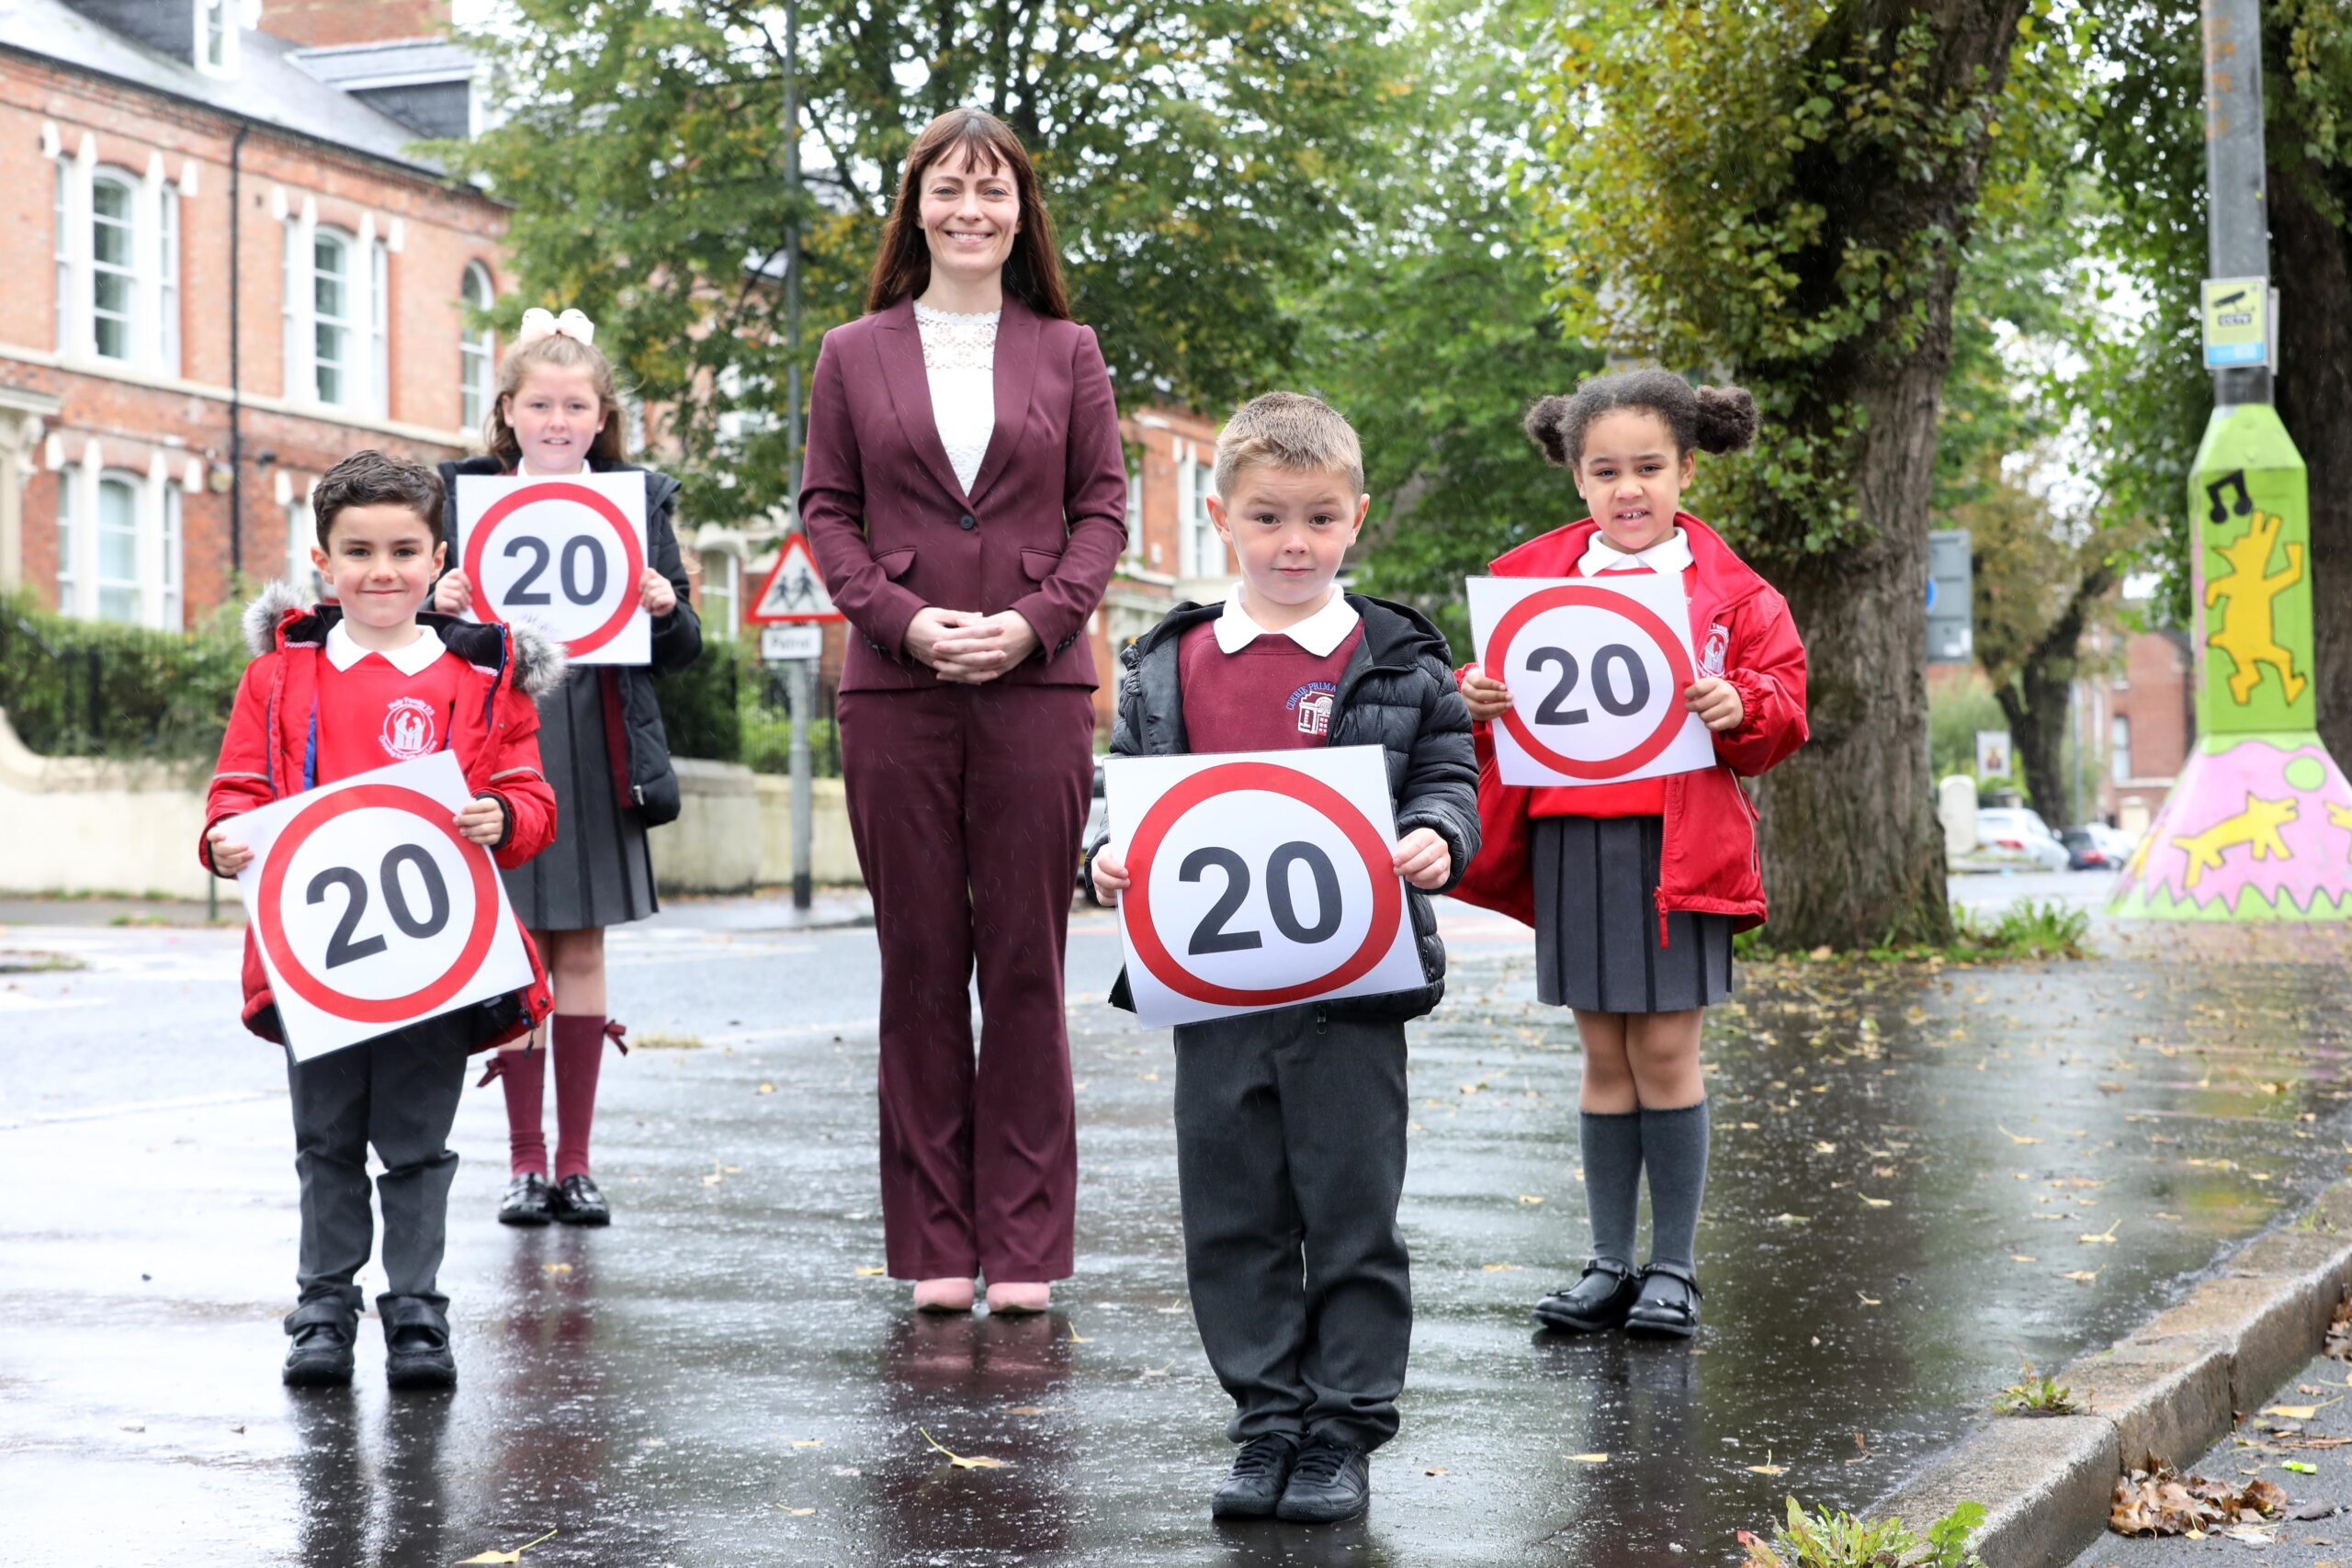 Minister Mallon Launches Roll Out of 20mph speed limit schemes at 100 schools - Newry news